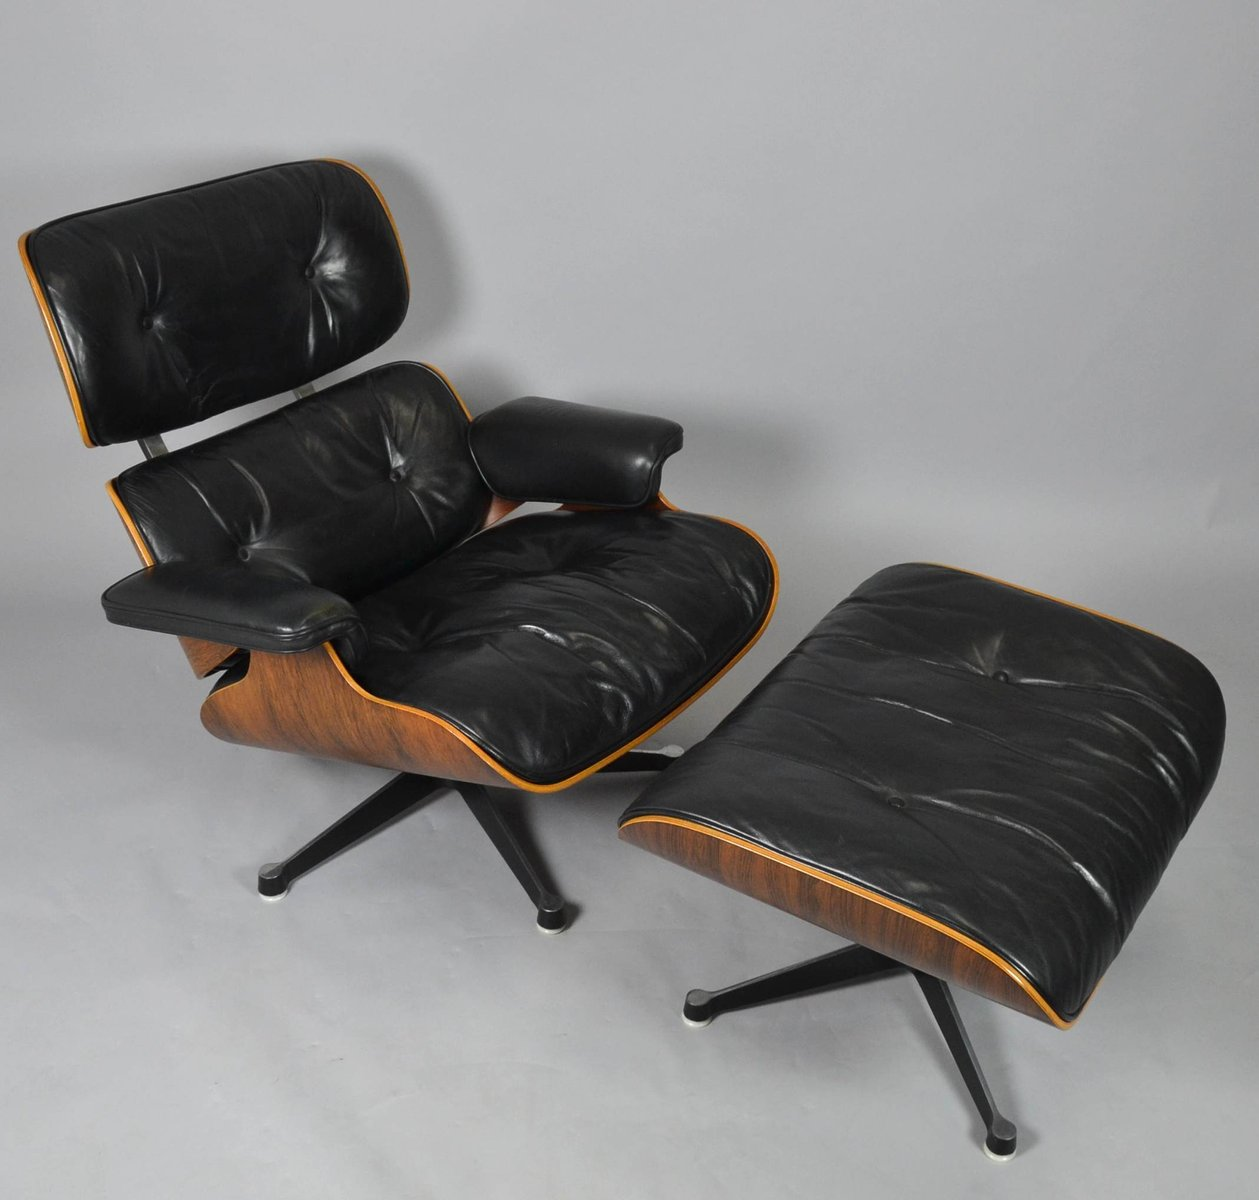 mac at home extra large moon chair with ottoman. lounge chair \u0026 ottoman by charles ray eames for vitra, 1960s mac at home extra large moon with